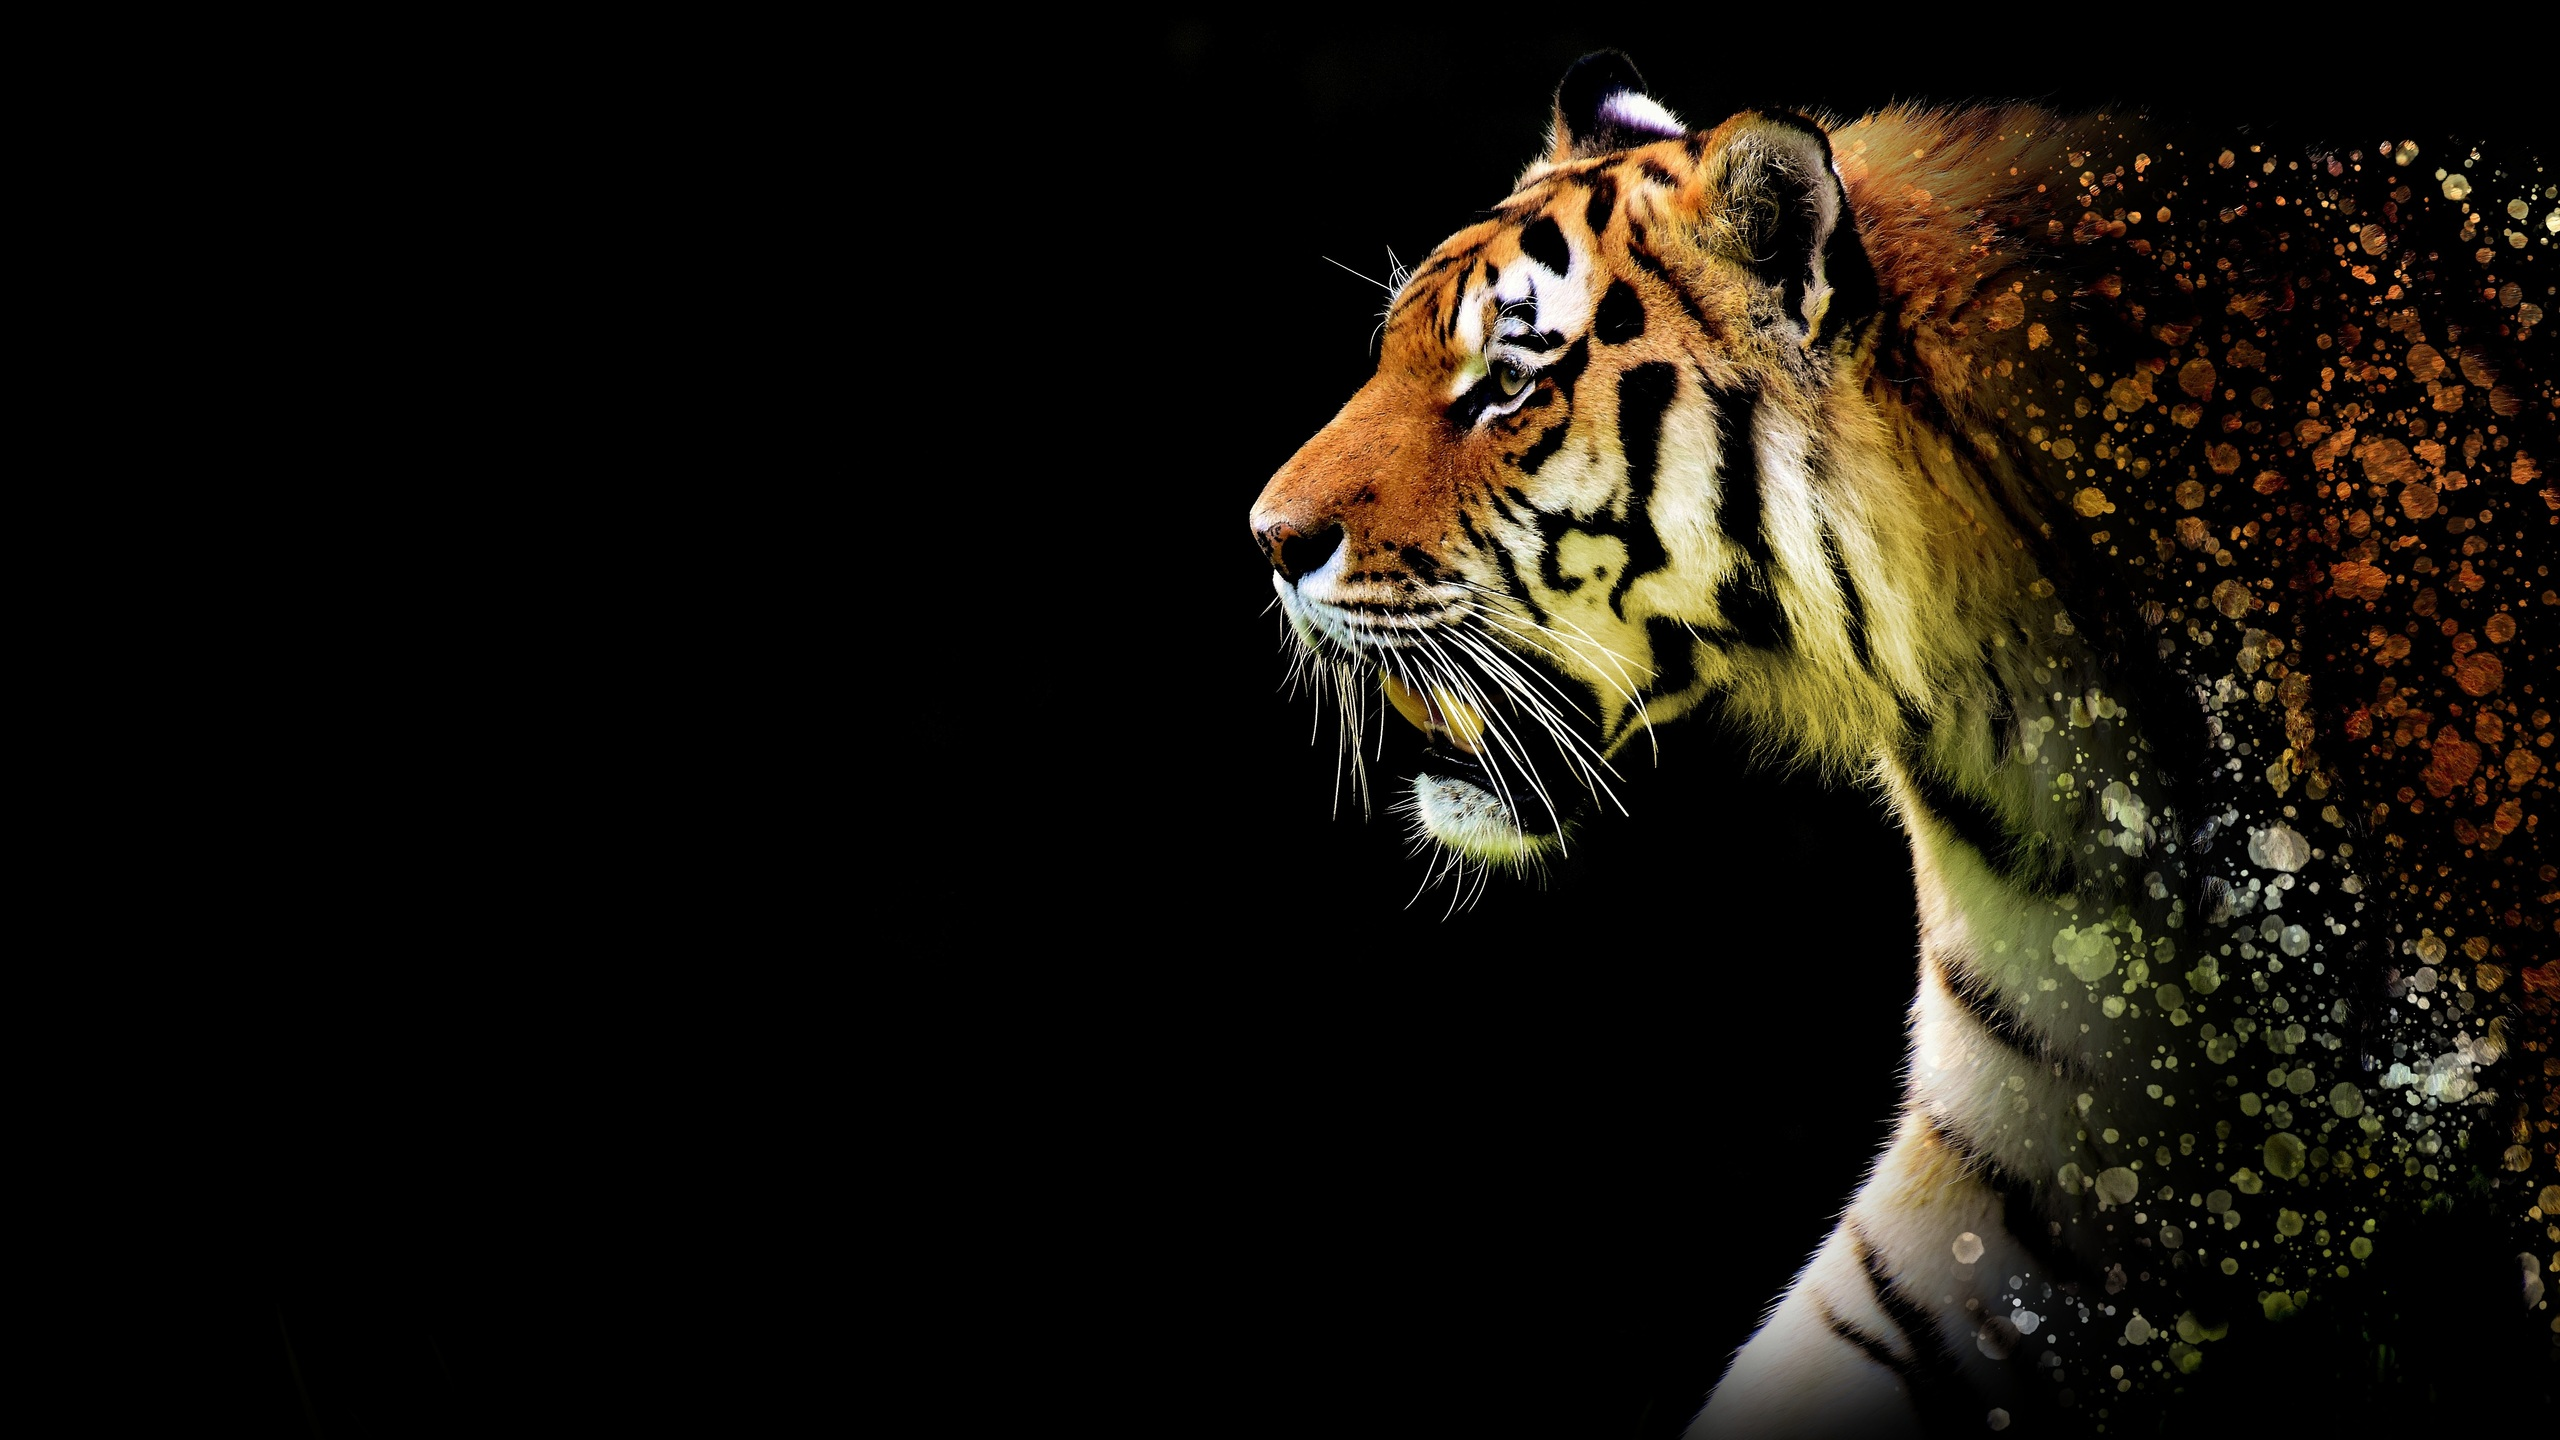 2560x1440 Tiger Abstract 5k 1440p Resolution Hd 4k Wallpapers